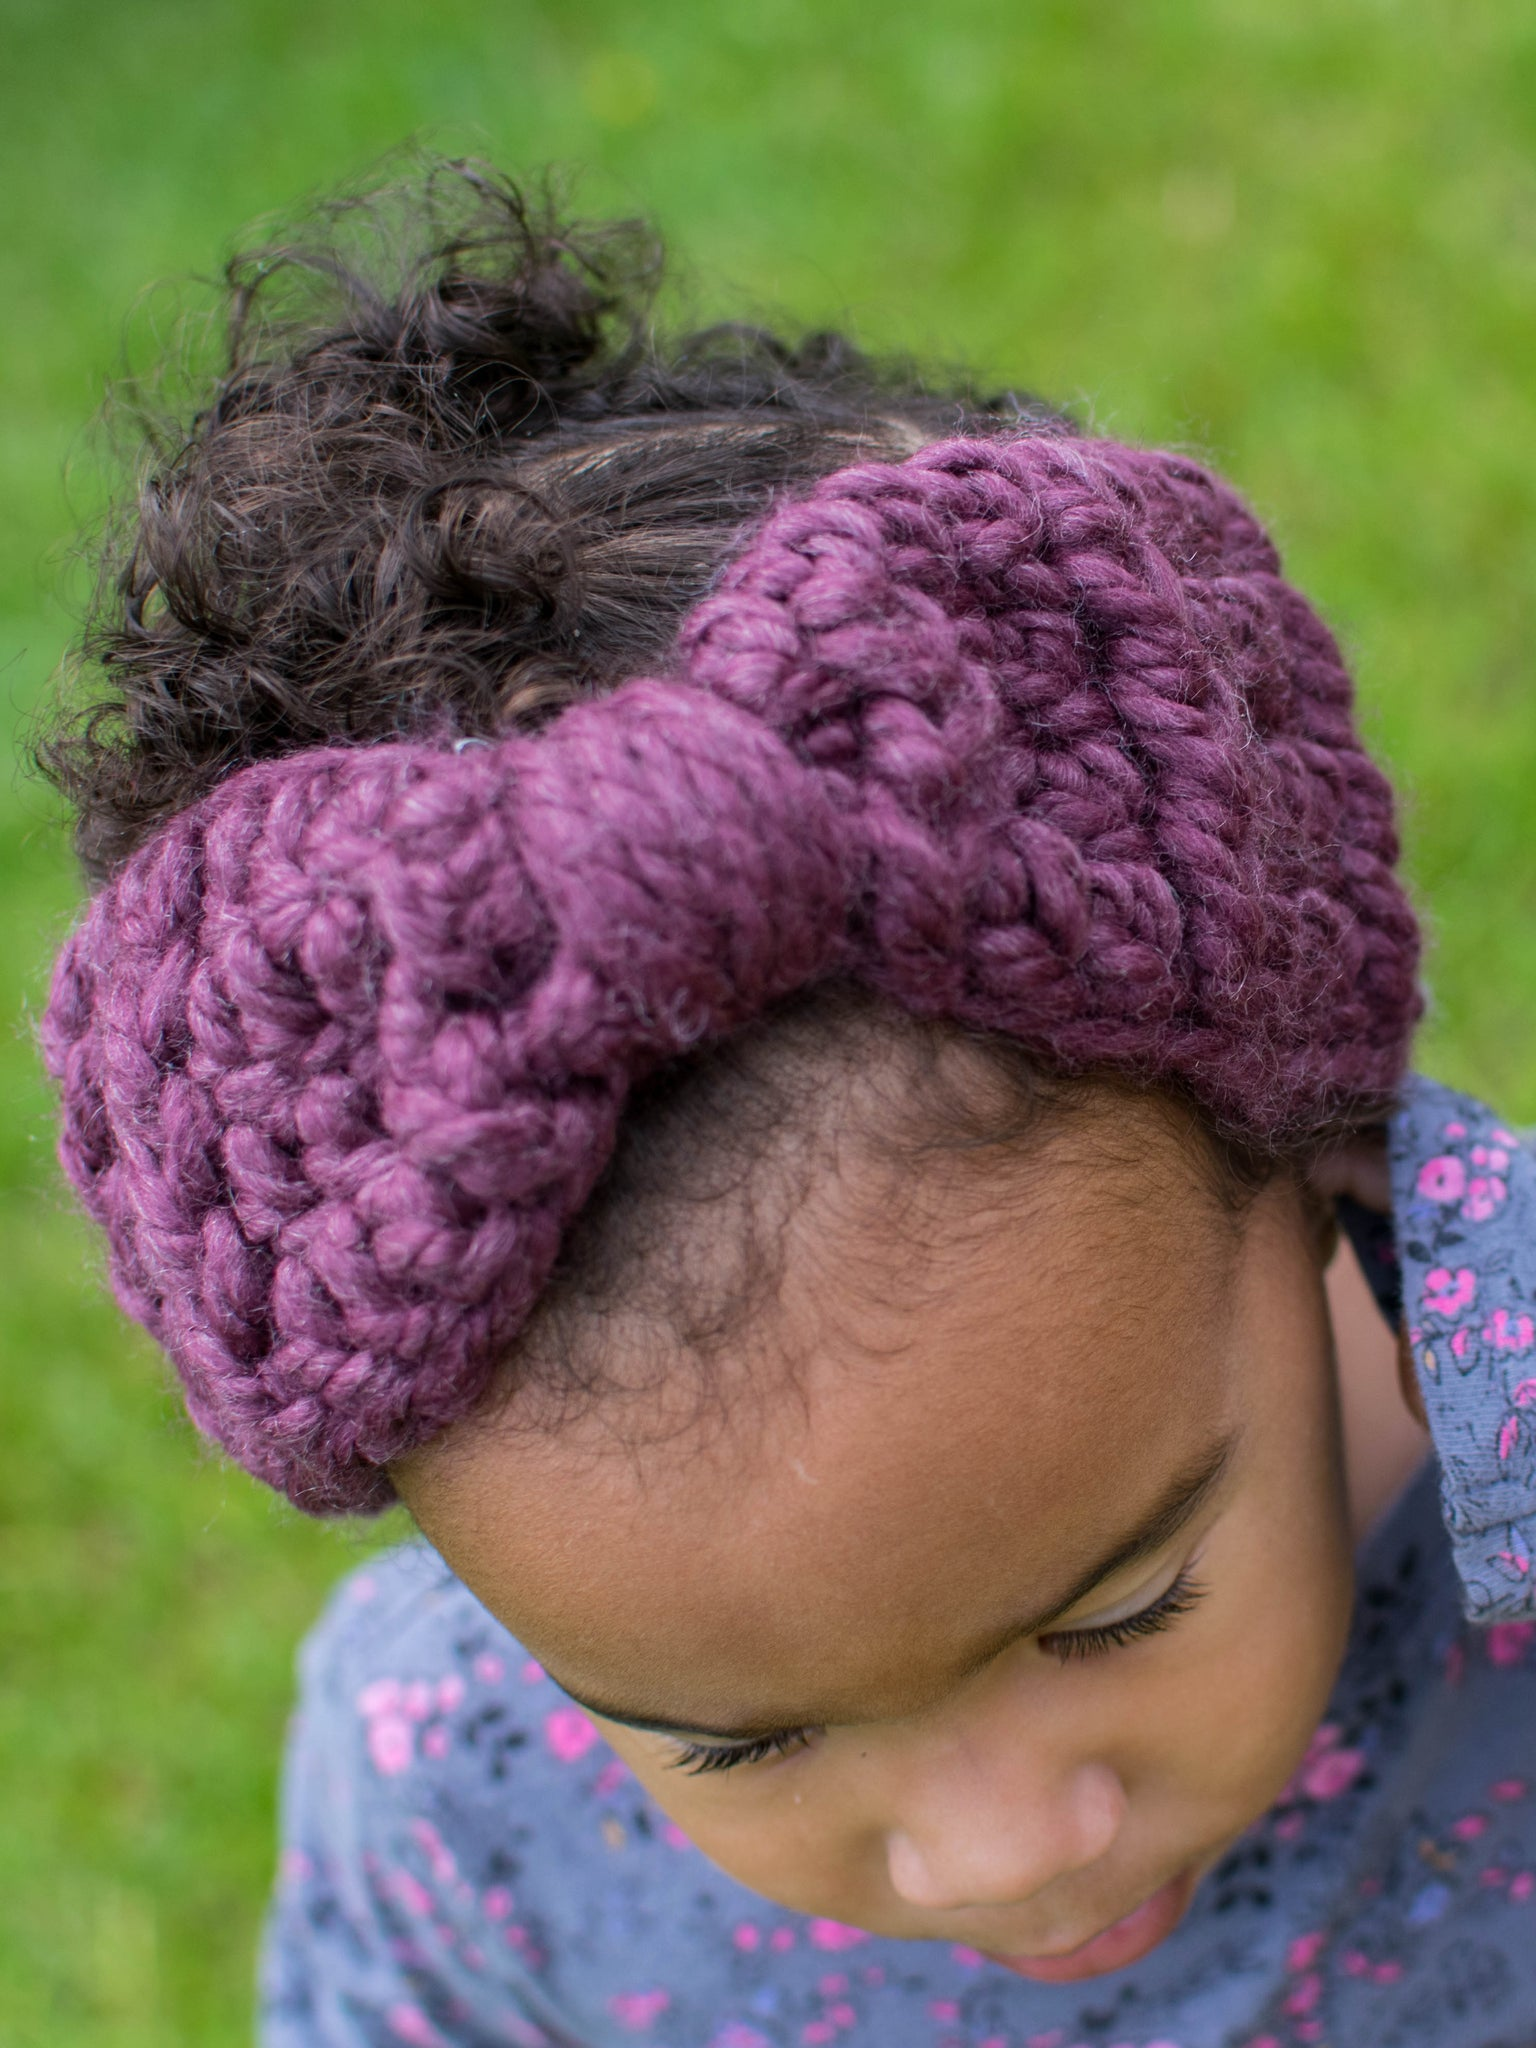 32 colors knotted bow winter headband by Two Seaside Babes